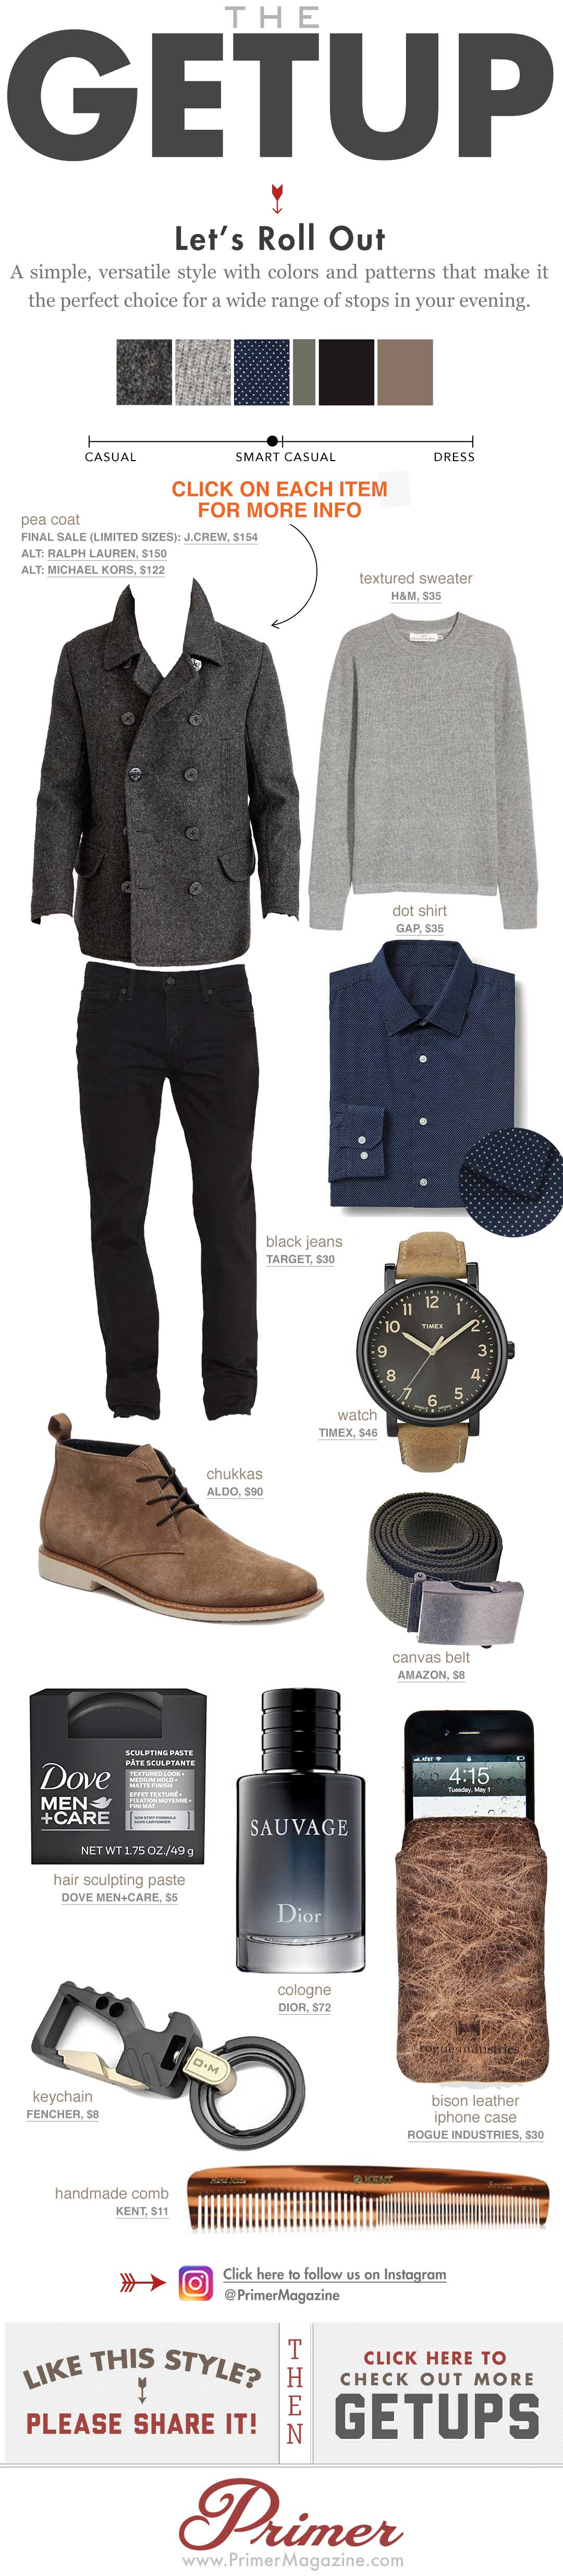 The Getup - going out outfits - Mens Casual Fashion Inspiration